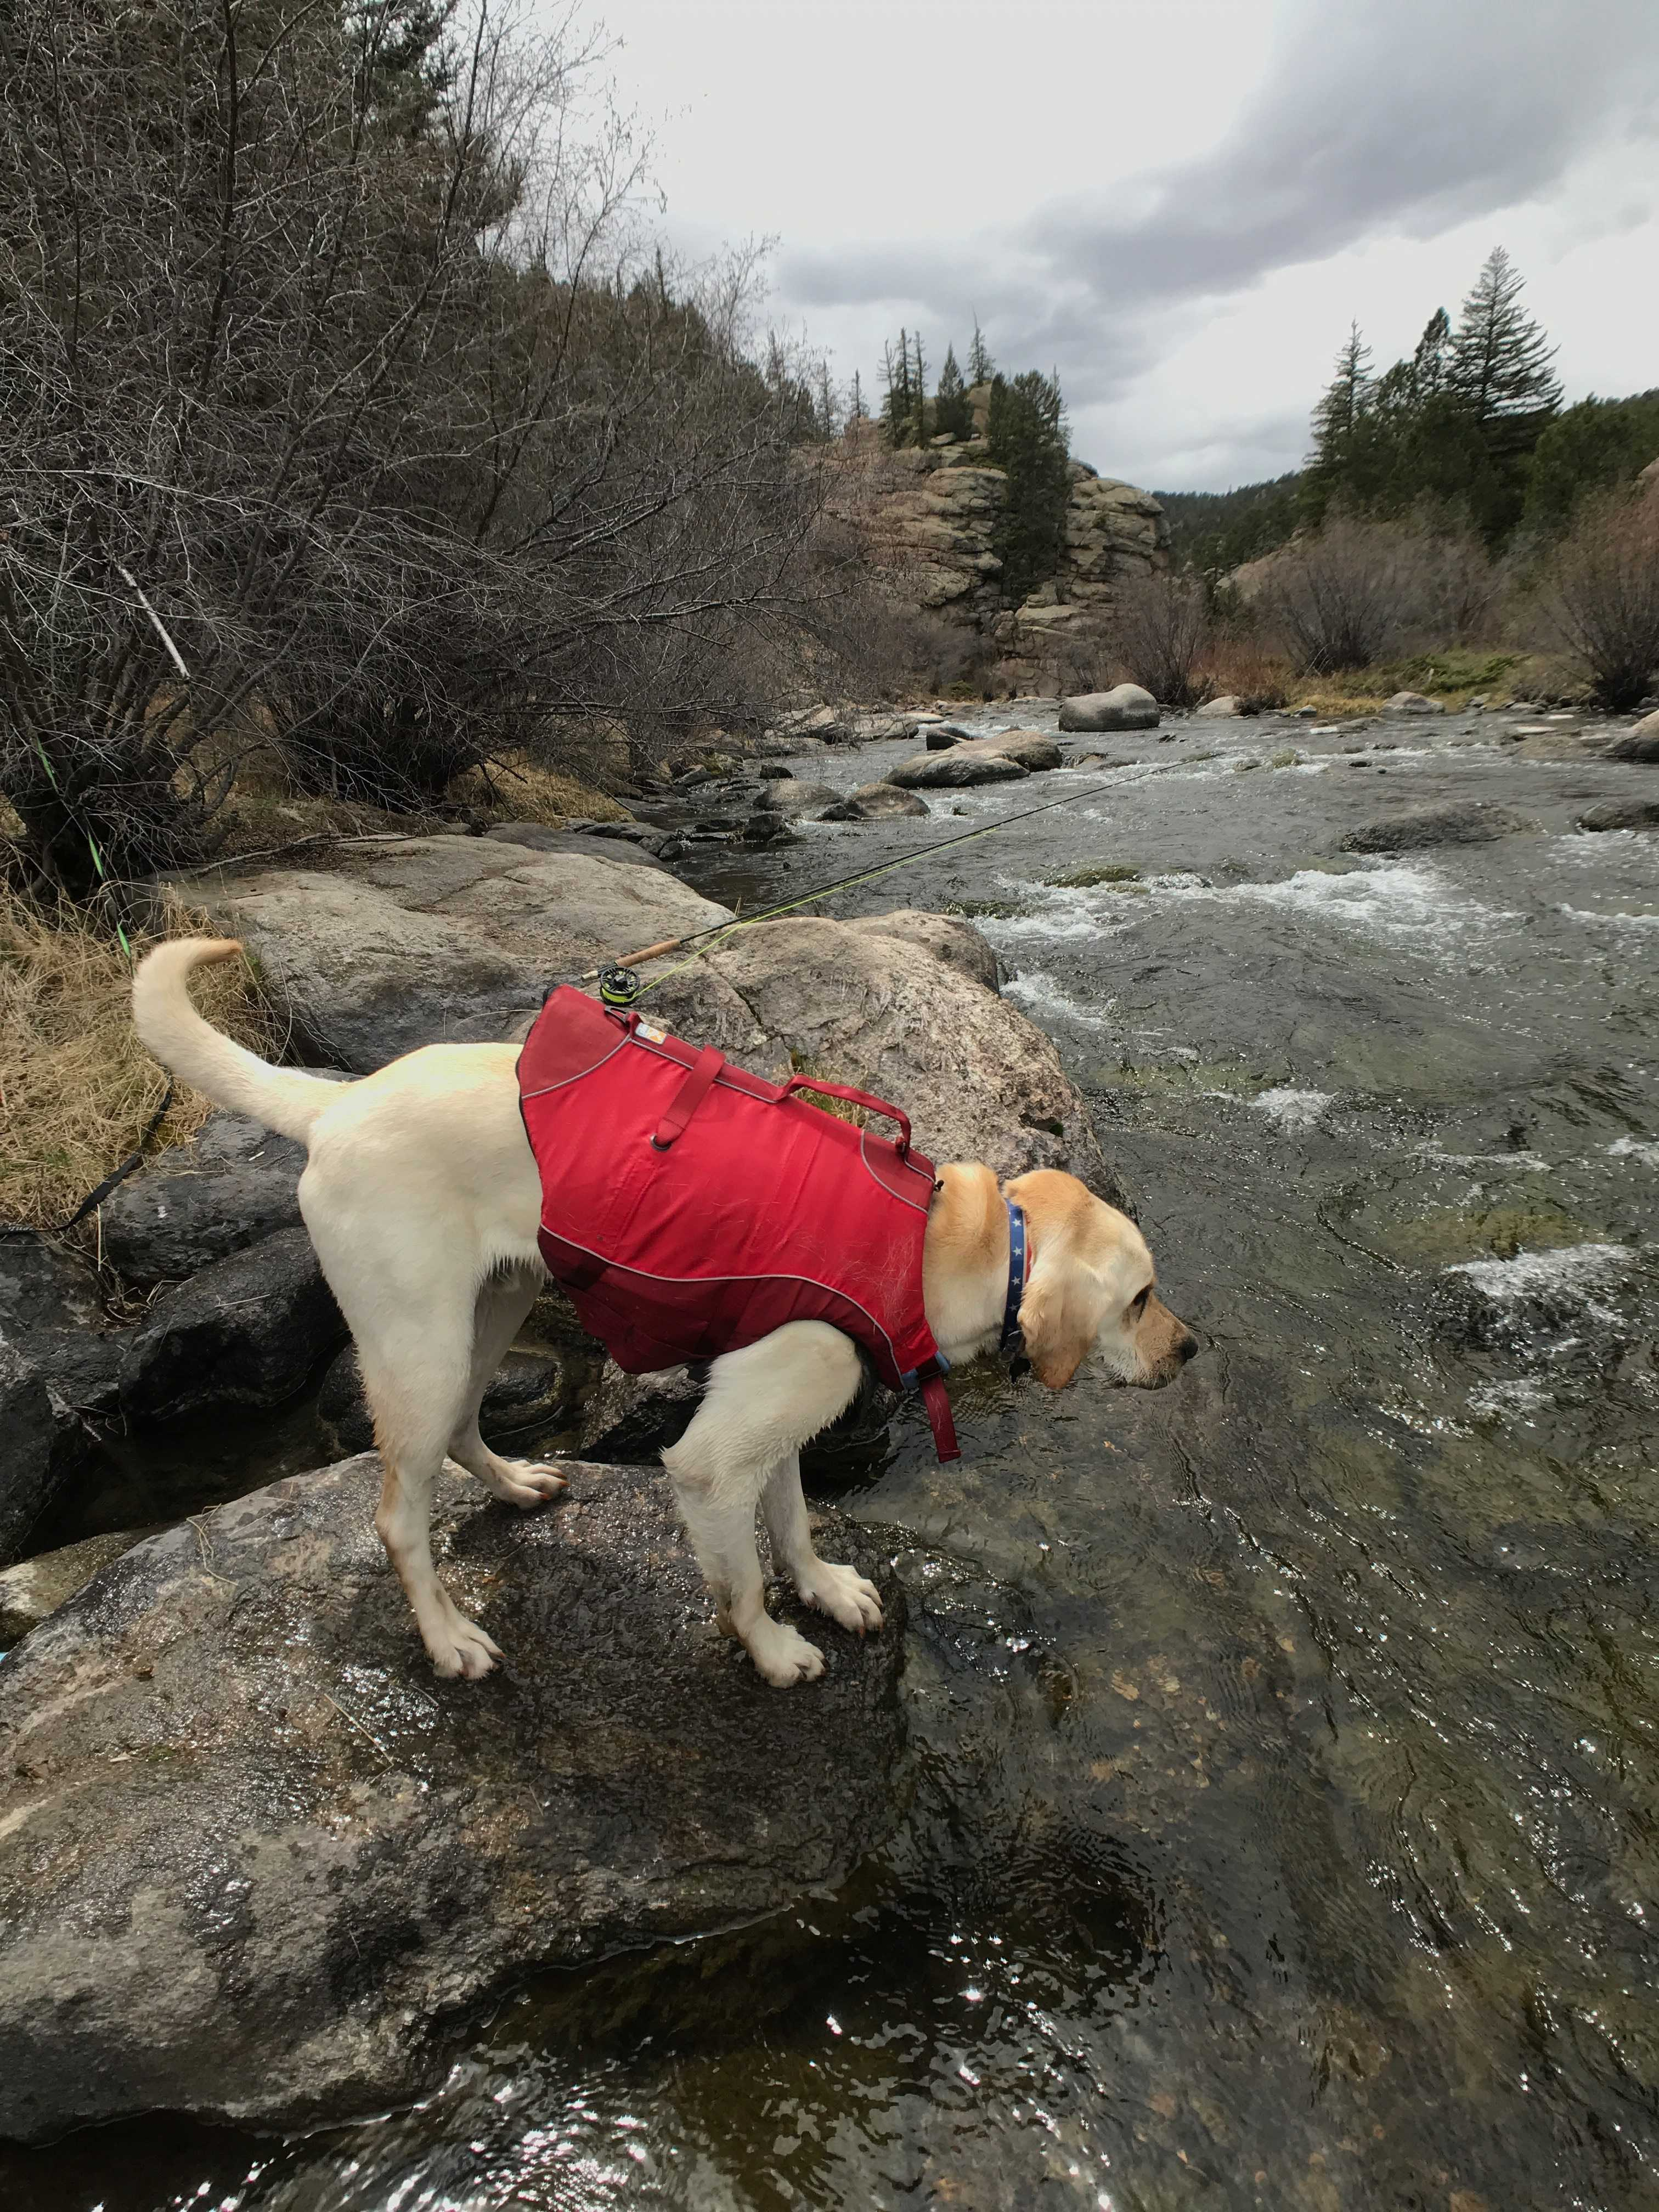 5 Ways to Prepare to Fly Fish with Your Dog